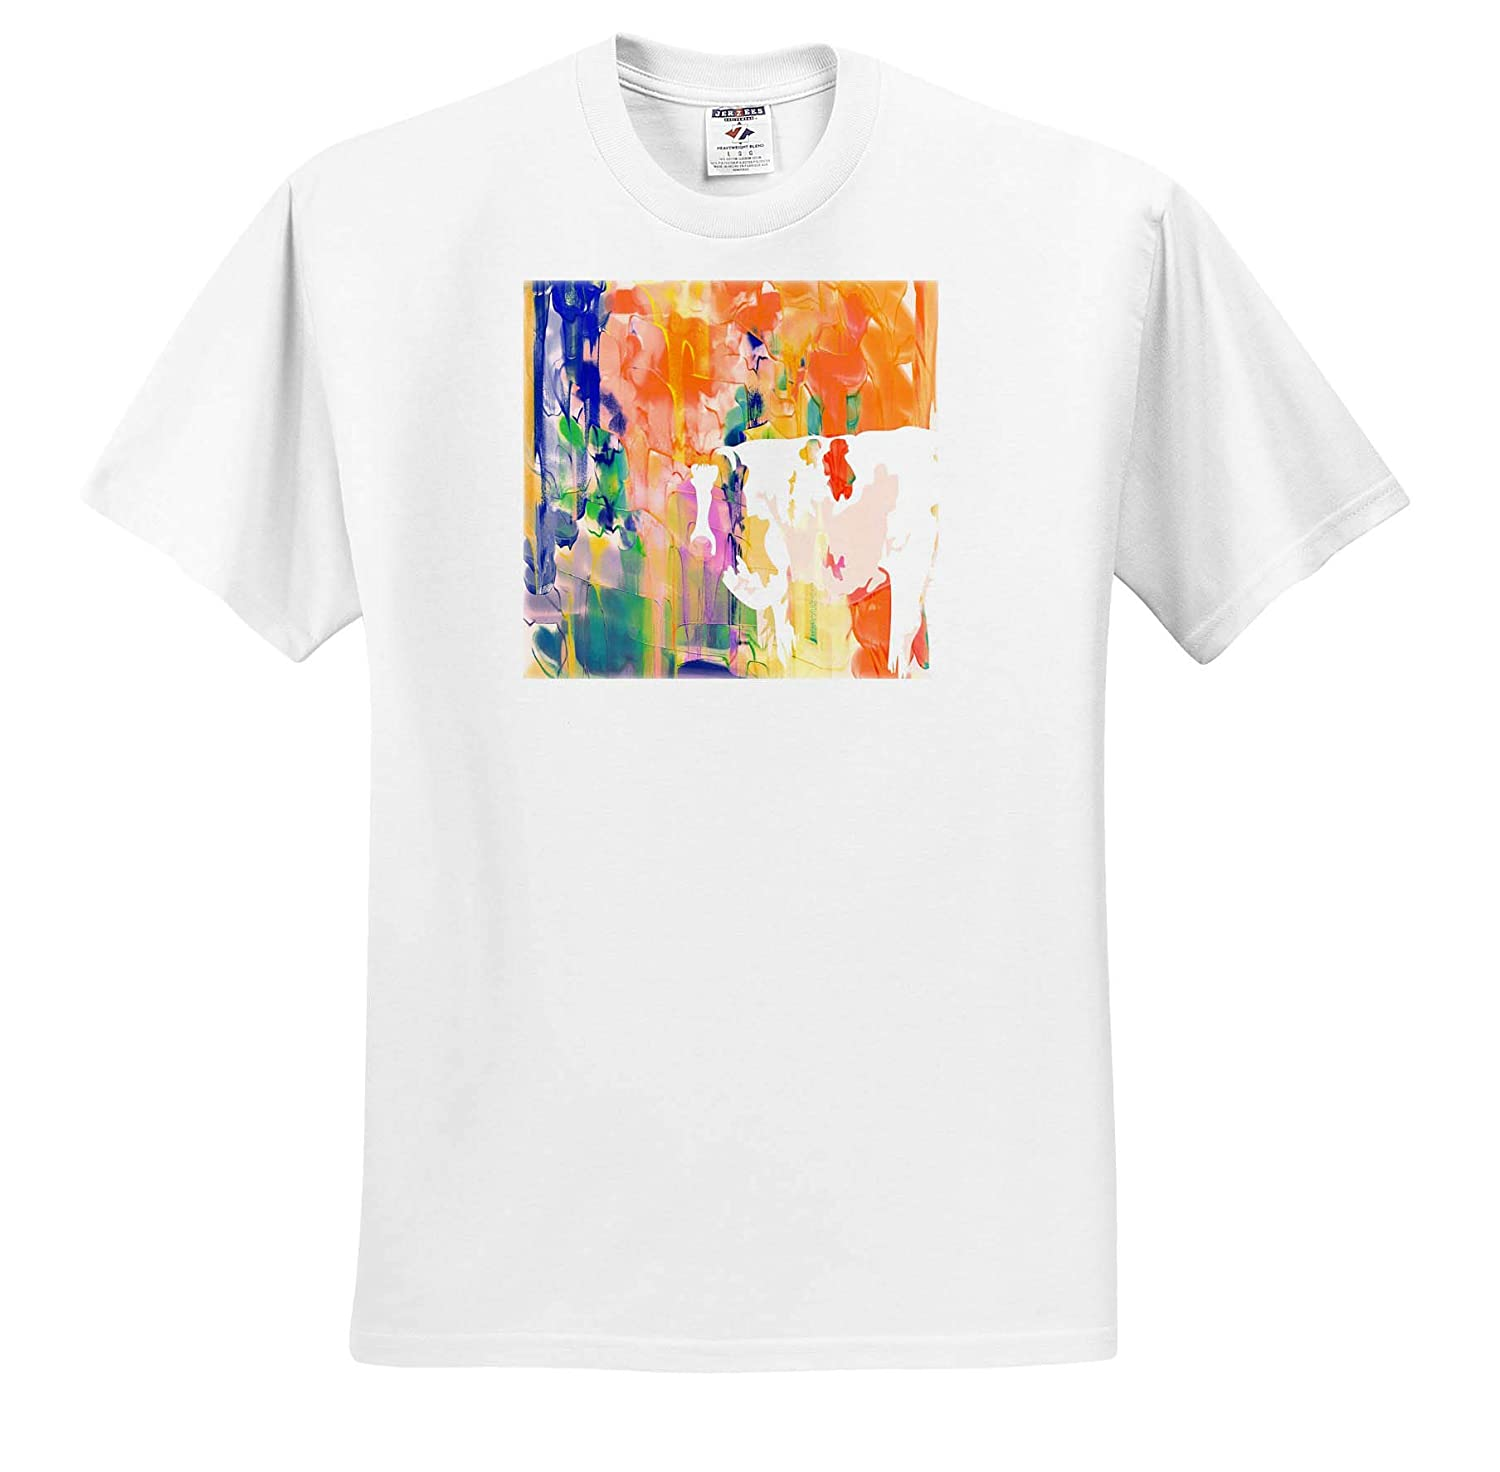 Image of Hidden White Cow in Orange and Blue Painting Watercolor Art T-Shirts 3dRose Lens Art by Florene